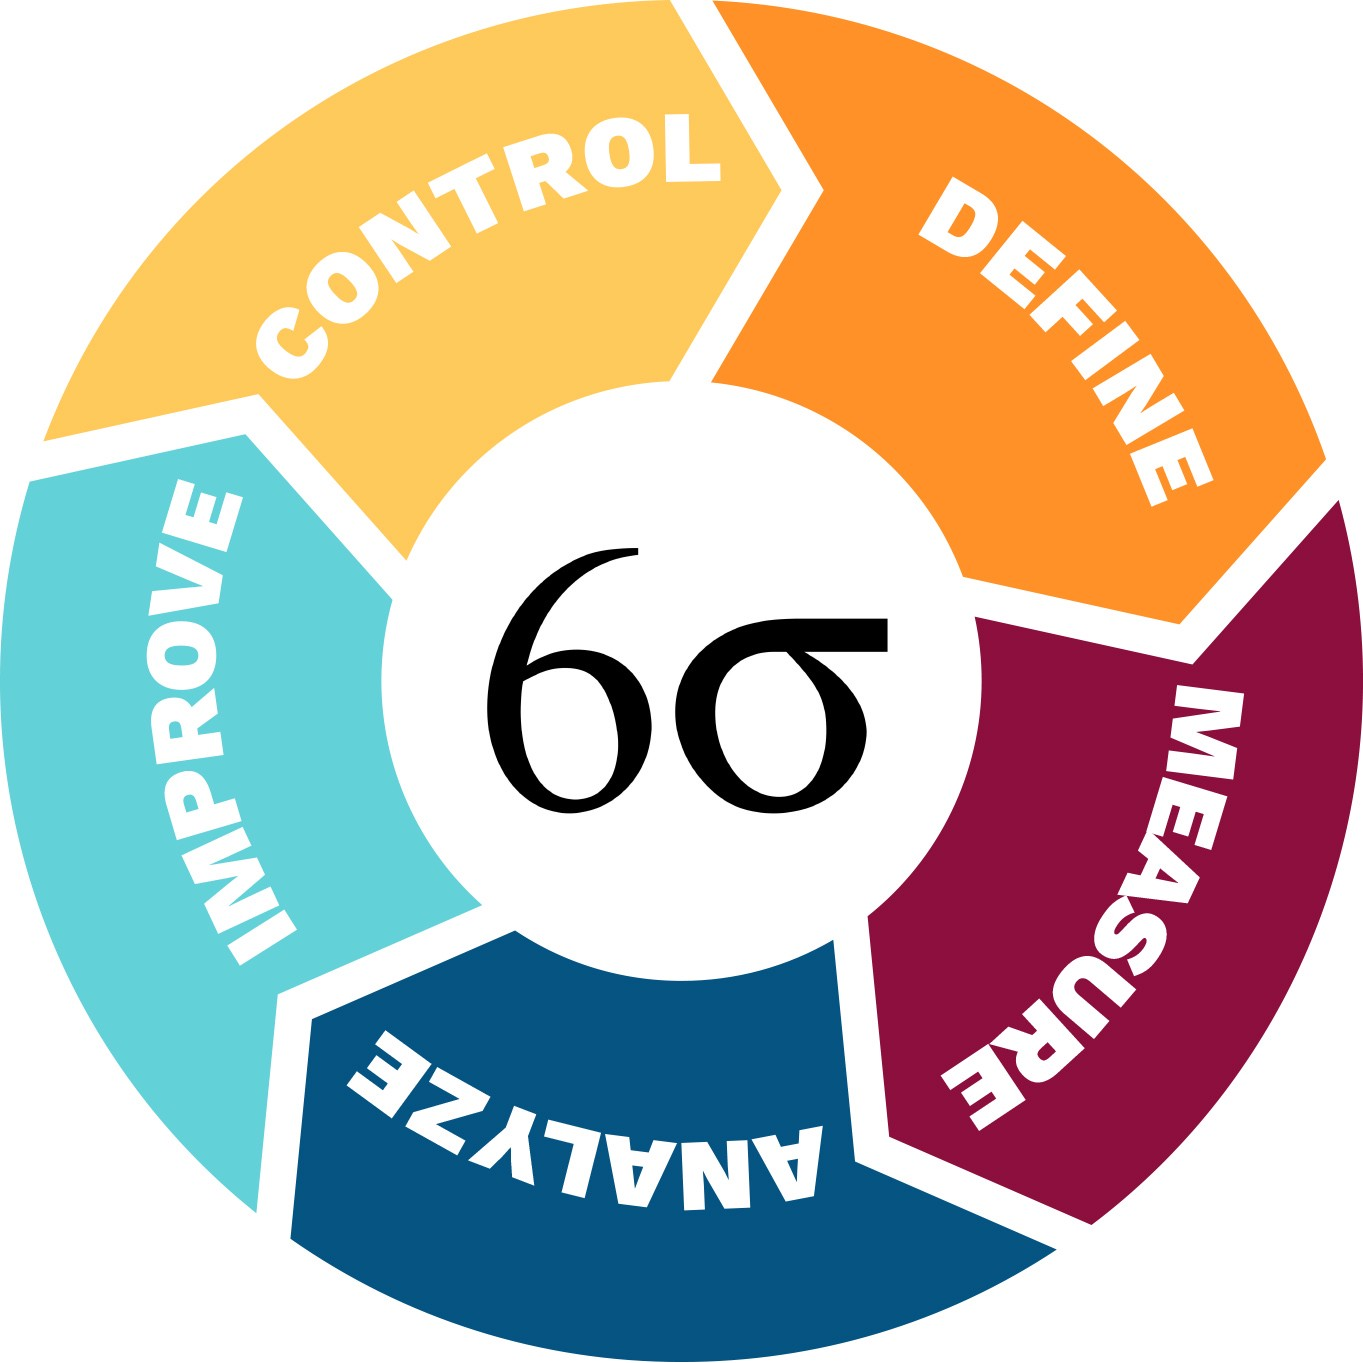 Add A Lean Six Sigma Certification To Your To Do List If You Havent